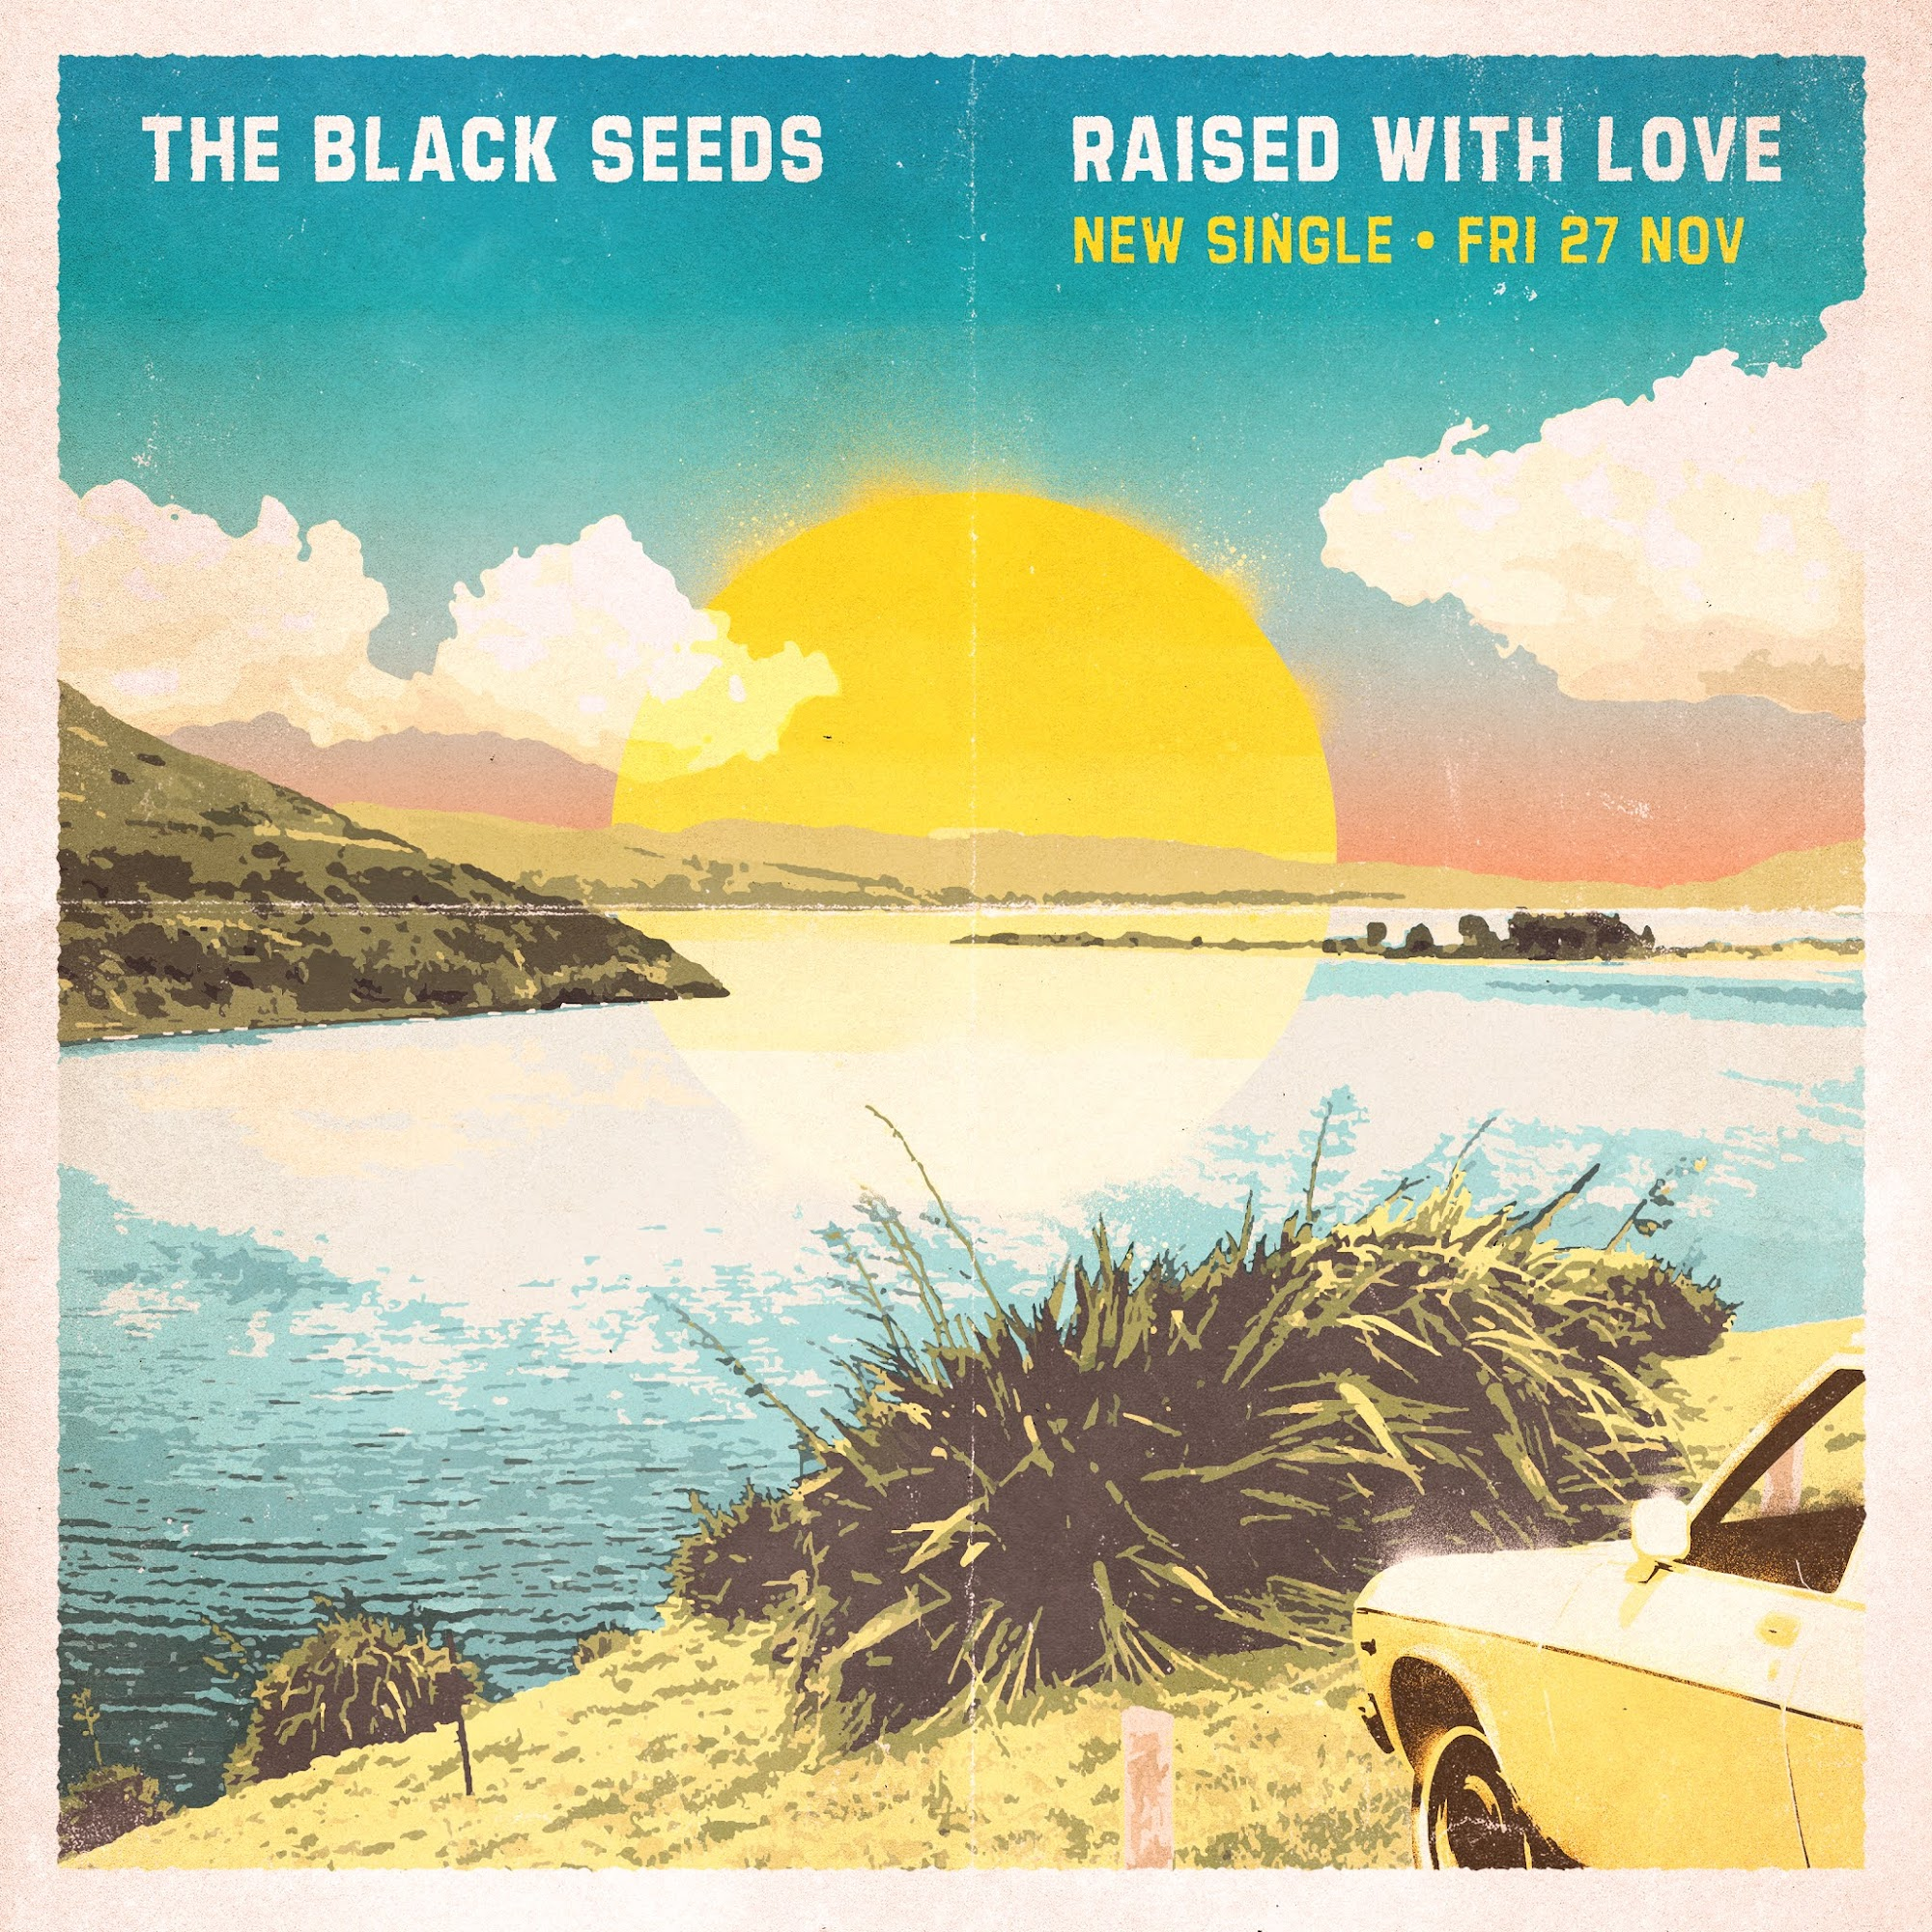 The Black Seeds - Raised with Love | Song of the Day